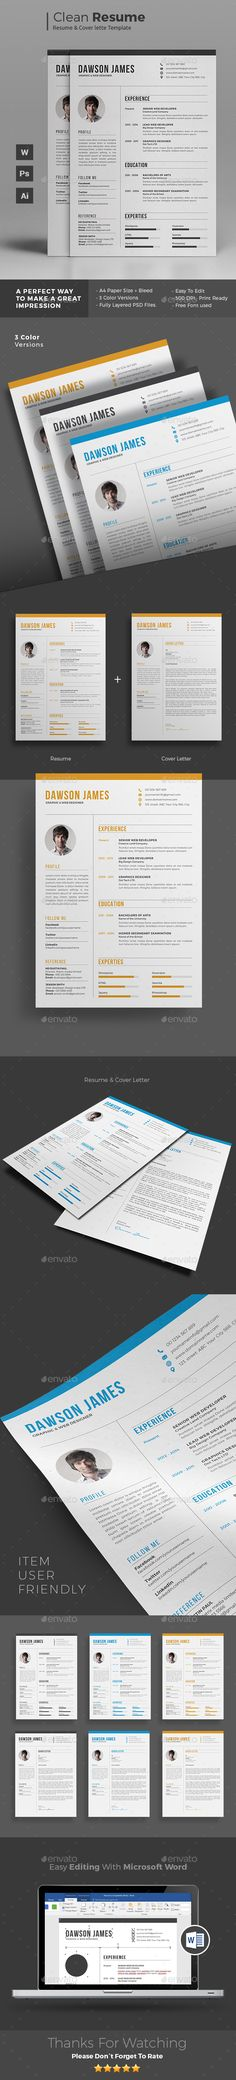 Resume Template Ai illustrator, Resume cv and Cv design - how to find microsoft word resume template